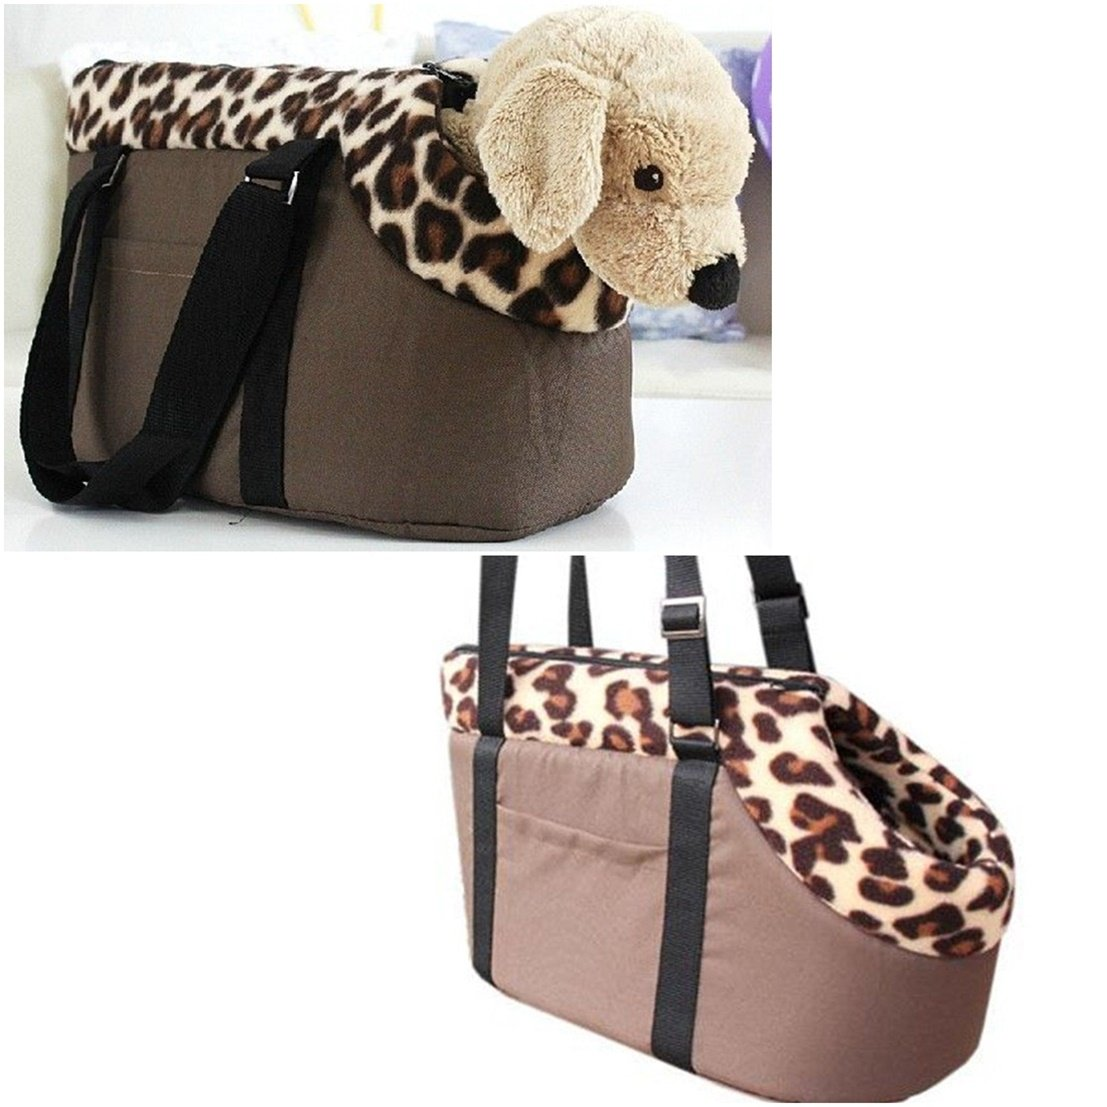 Great Popular Pet Handbag Size M Fabric Carry Bag Cat Nesting Folding Collapsible Color Coffee Leopard